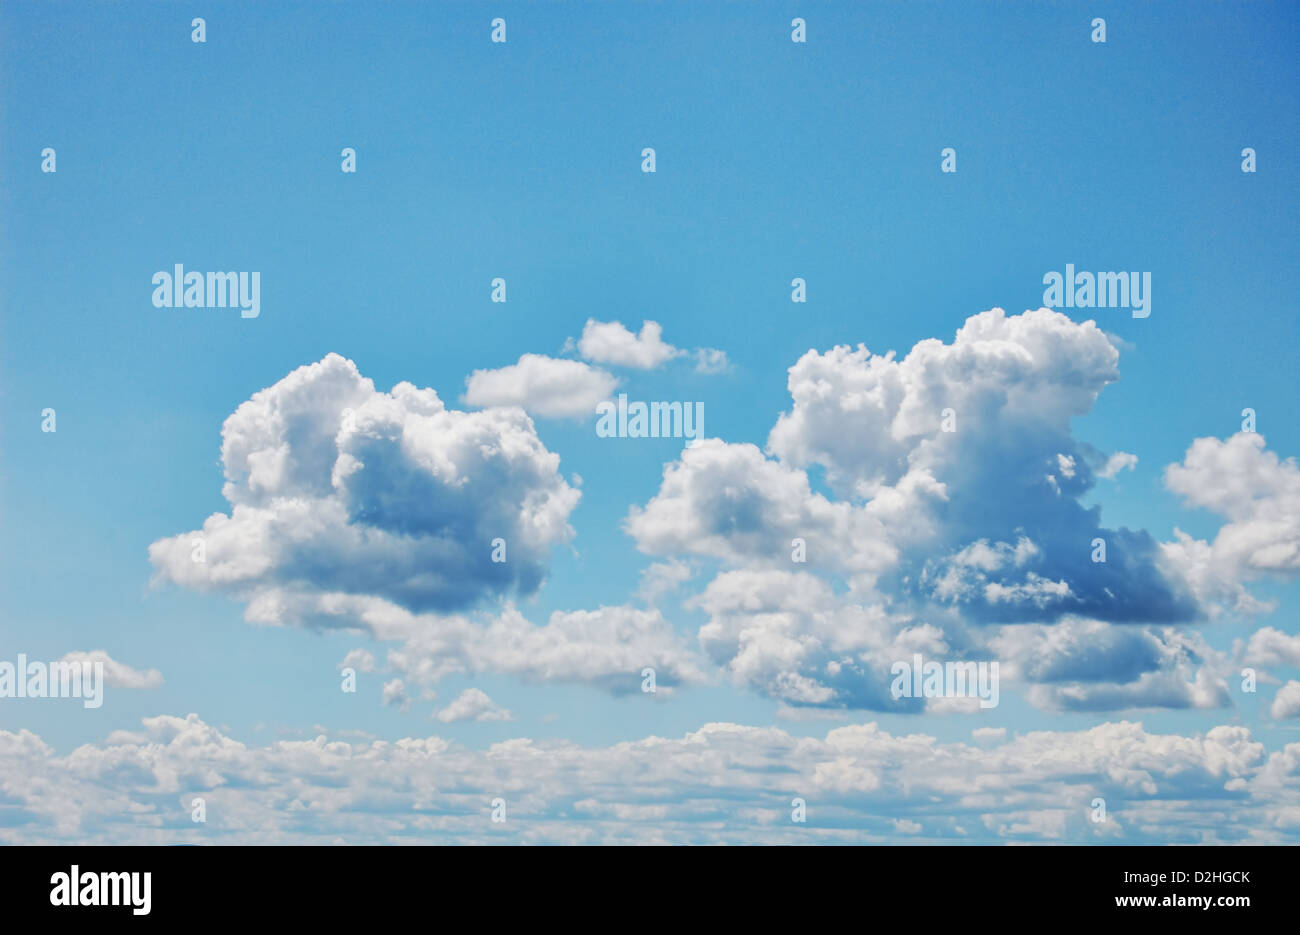 Blue sky with fluffy white clouds. Wide format. Photographic Image. - Stock Image